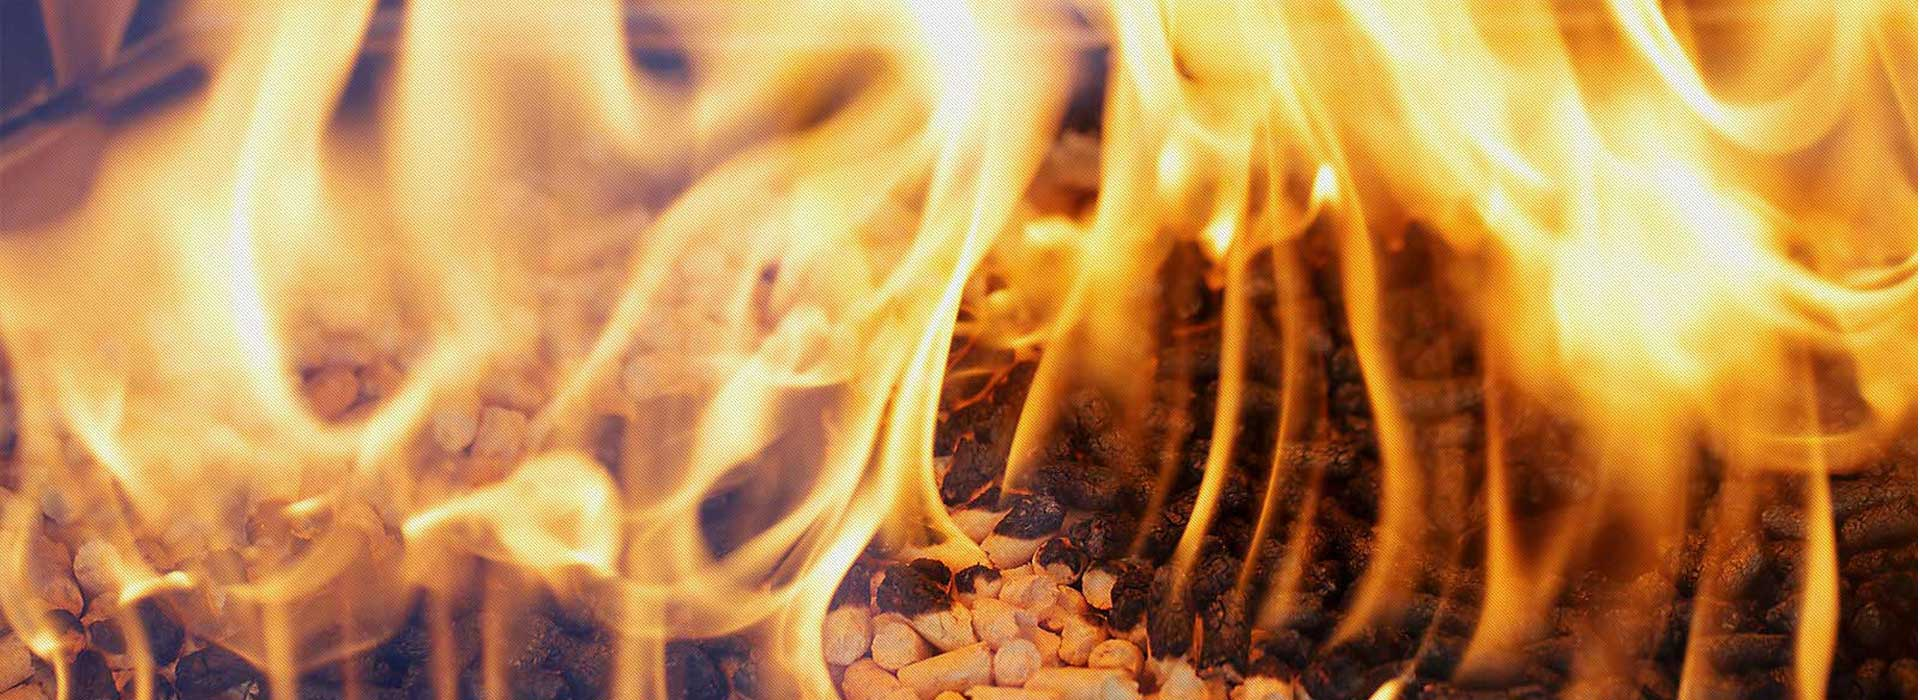 From Biomass To Biofule